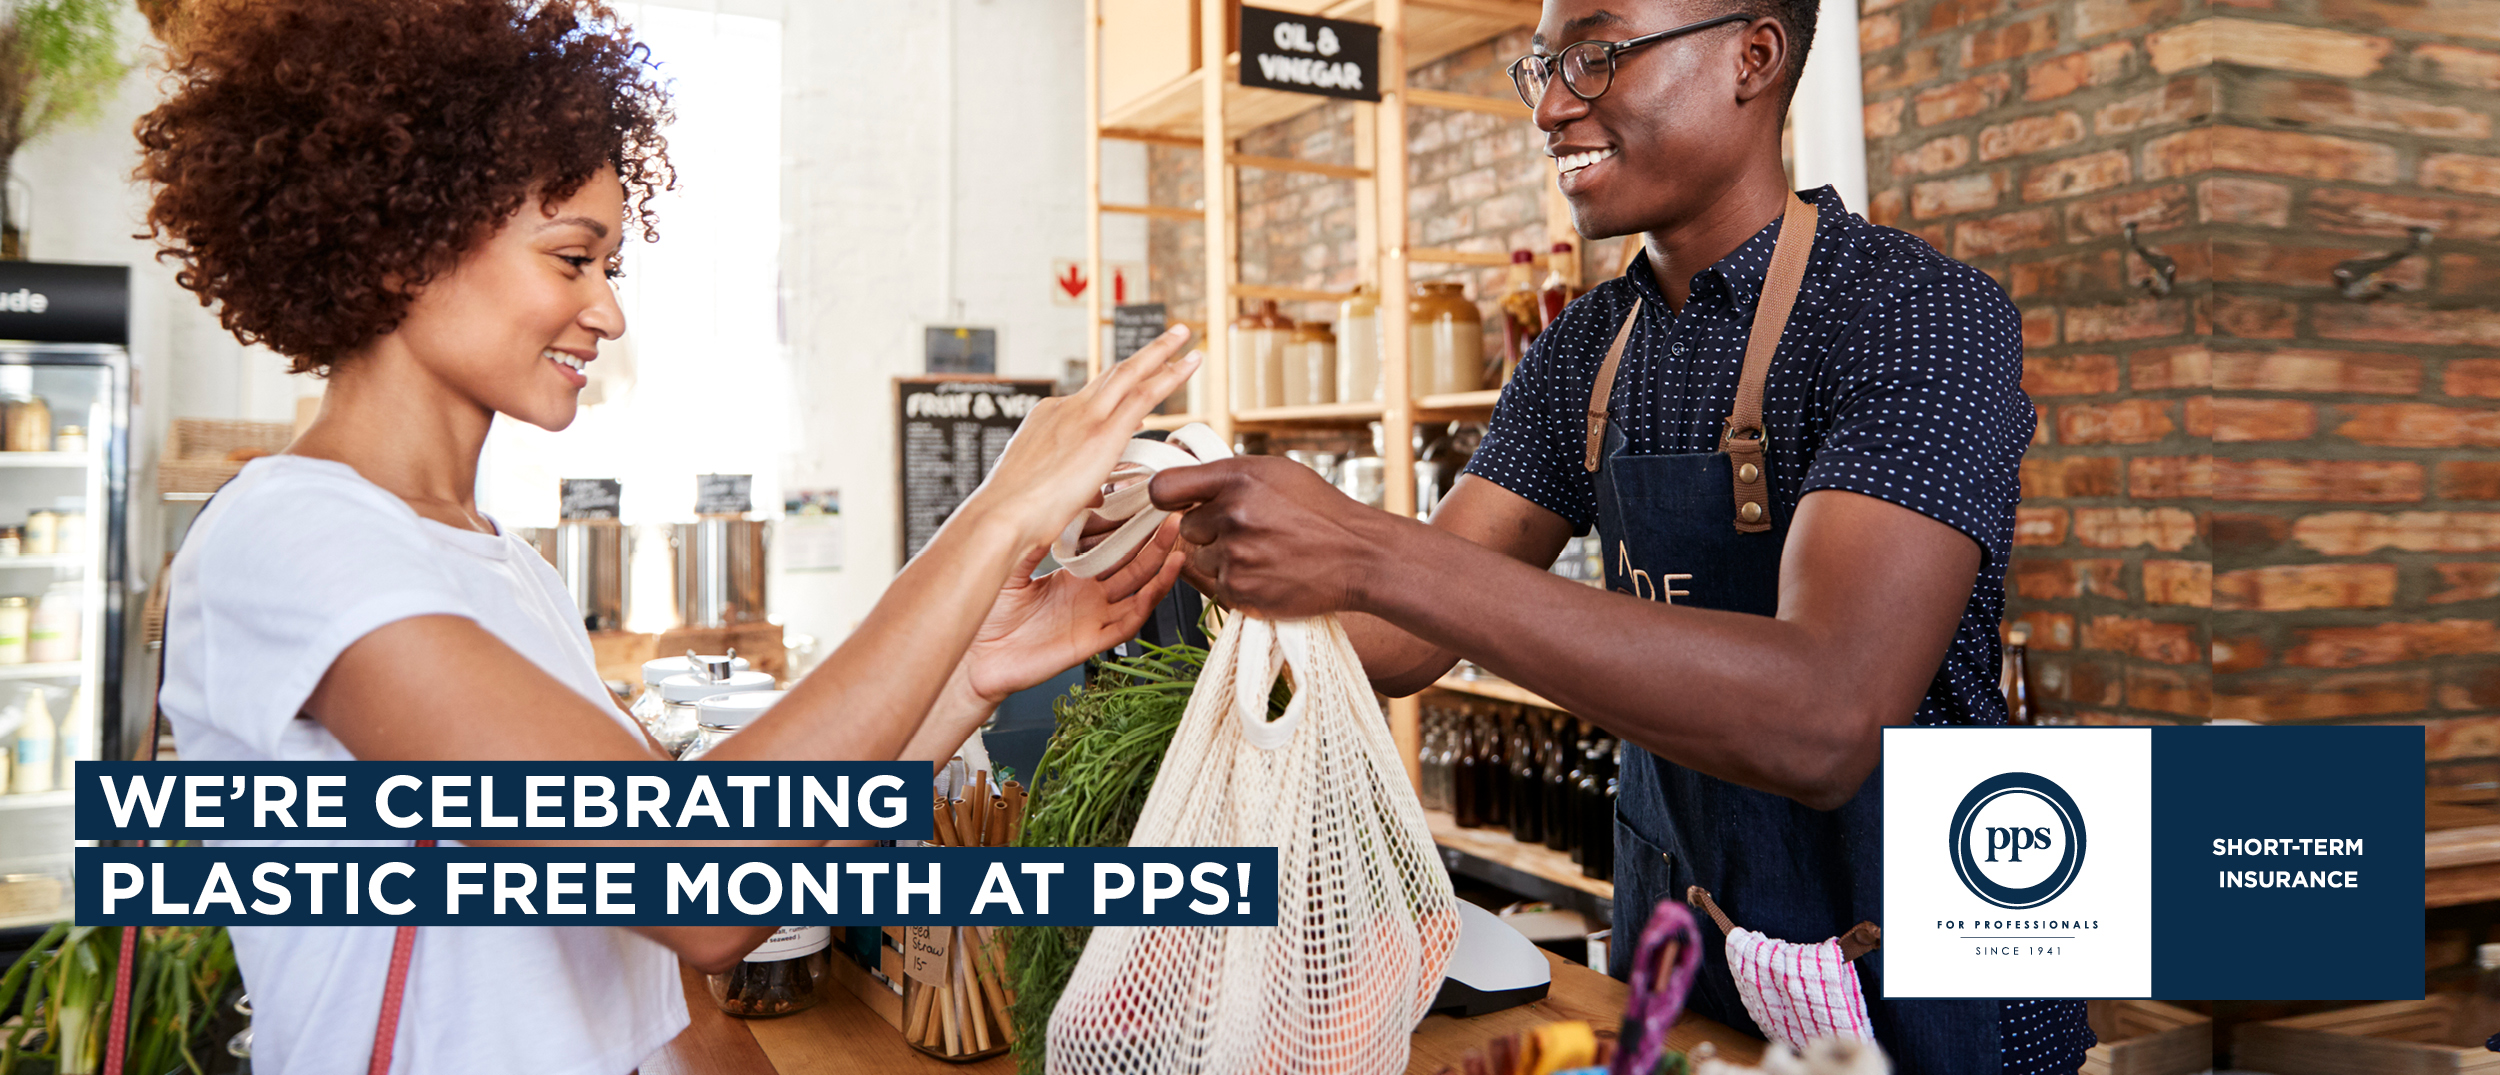 WE'RE CELEBRATING PLASTIC FREE MONTH AT PPS!